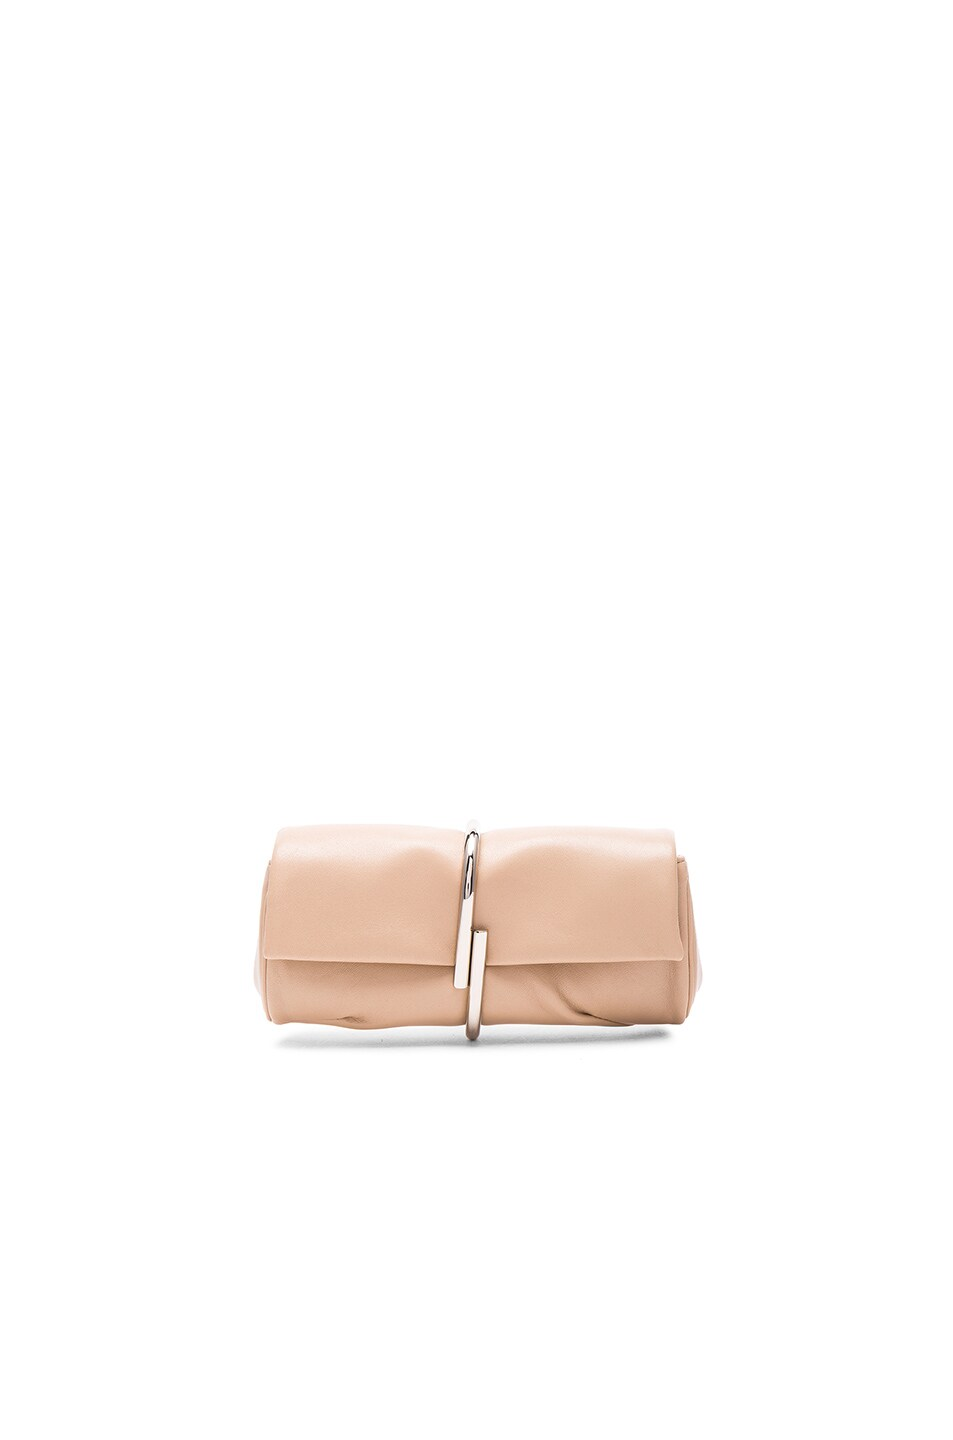 Image 1 of 3.1 phillip lim Alix Minaudiere in Fawn